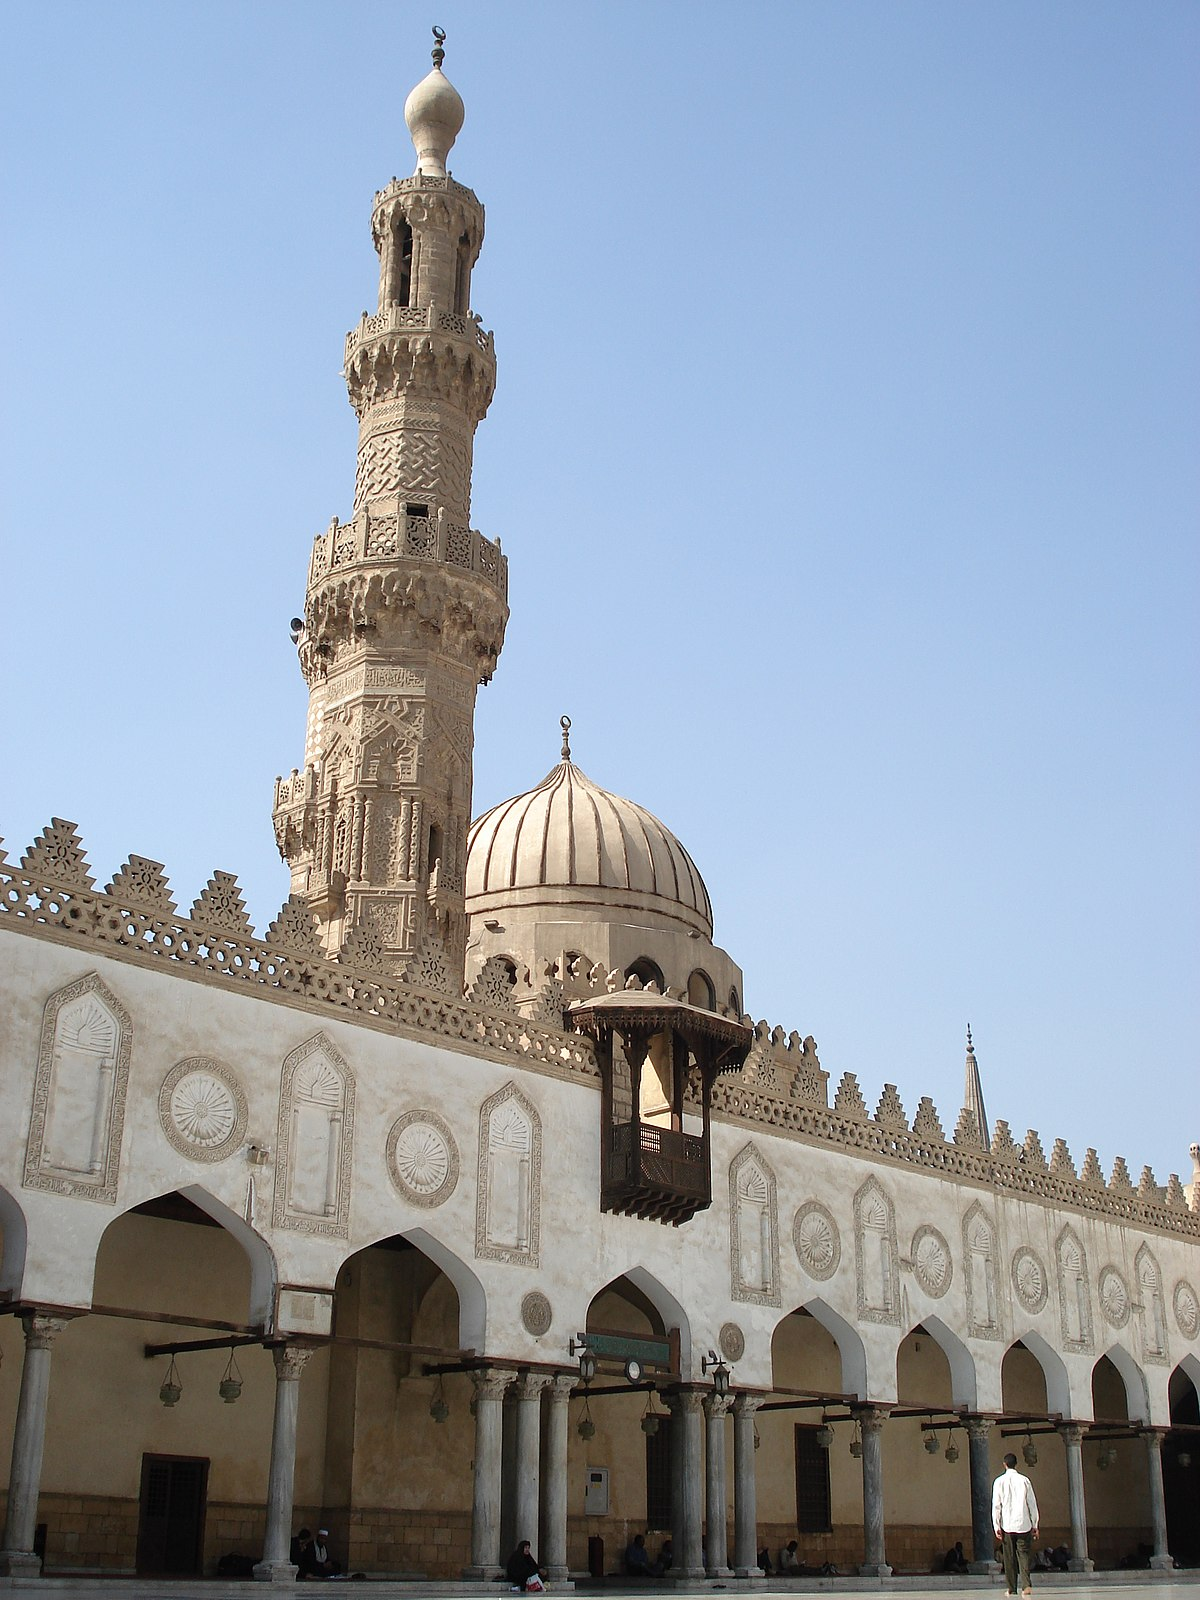 Al-Azhar University - Wikipedia